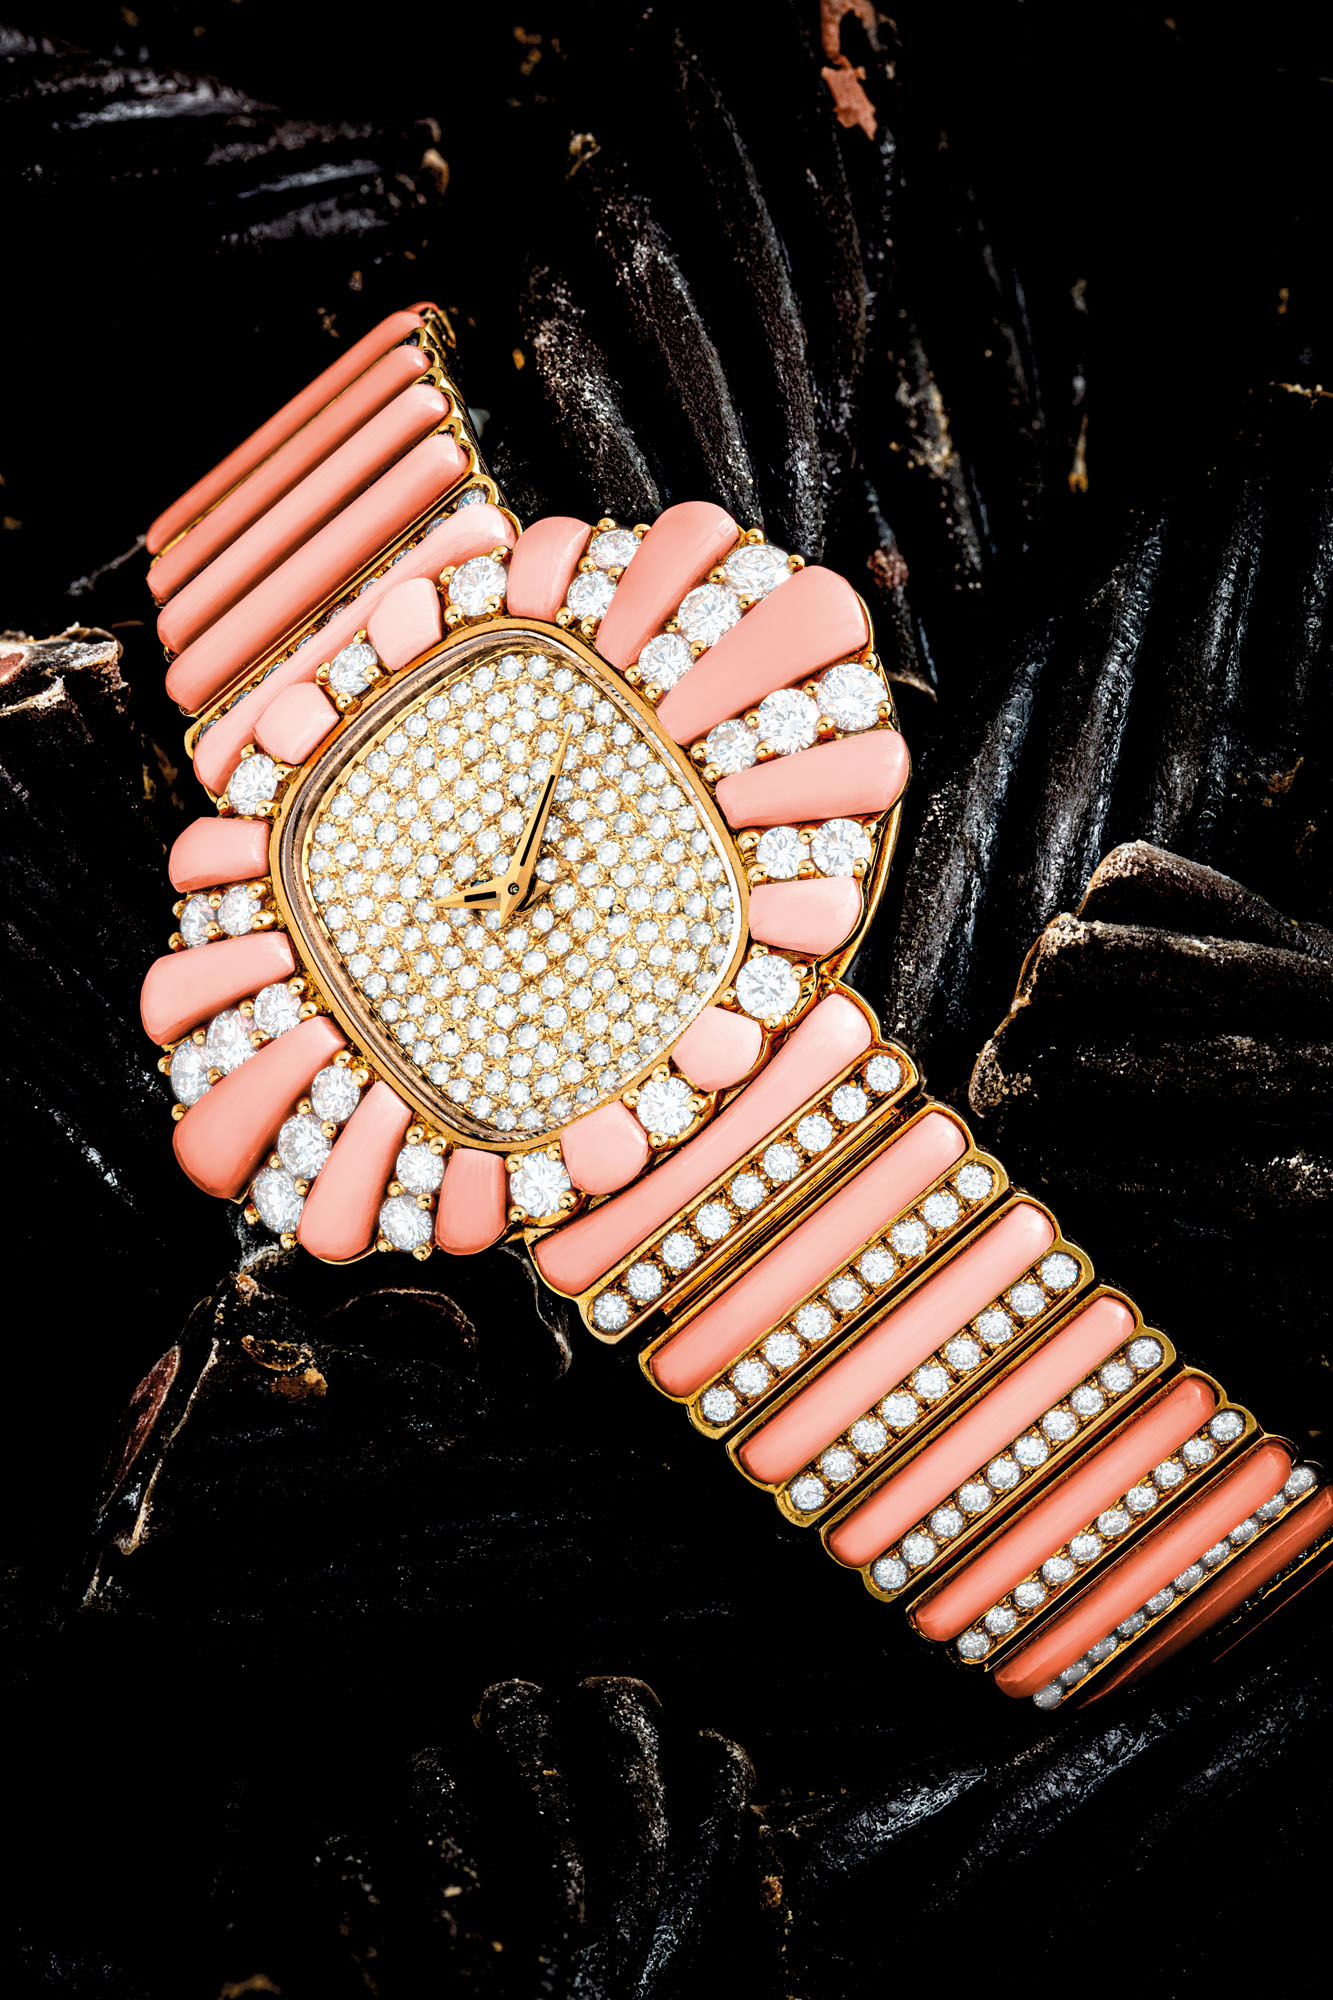 PATEK PHILIPPE. A LADY'S GORGEOUS AND POSSIBLY UNIQUE 18K GOLD AND DIAMOND-SET BRACELET WATCH WITH CORAL